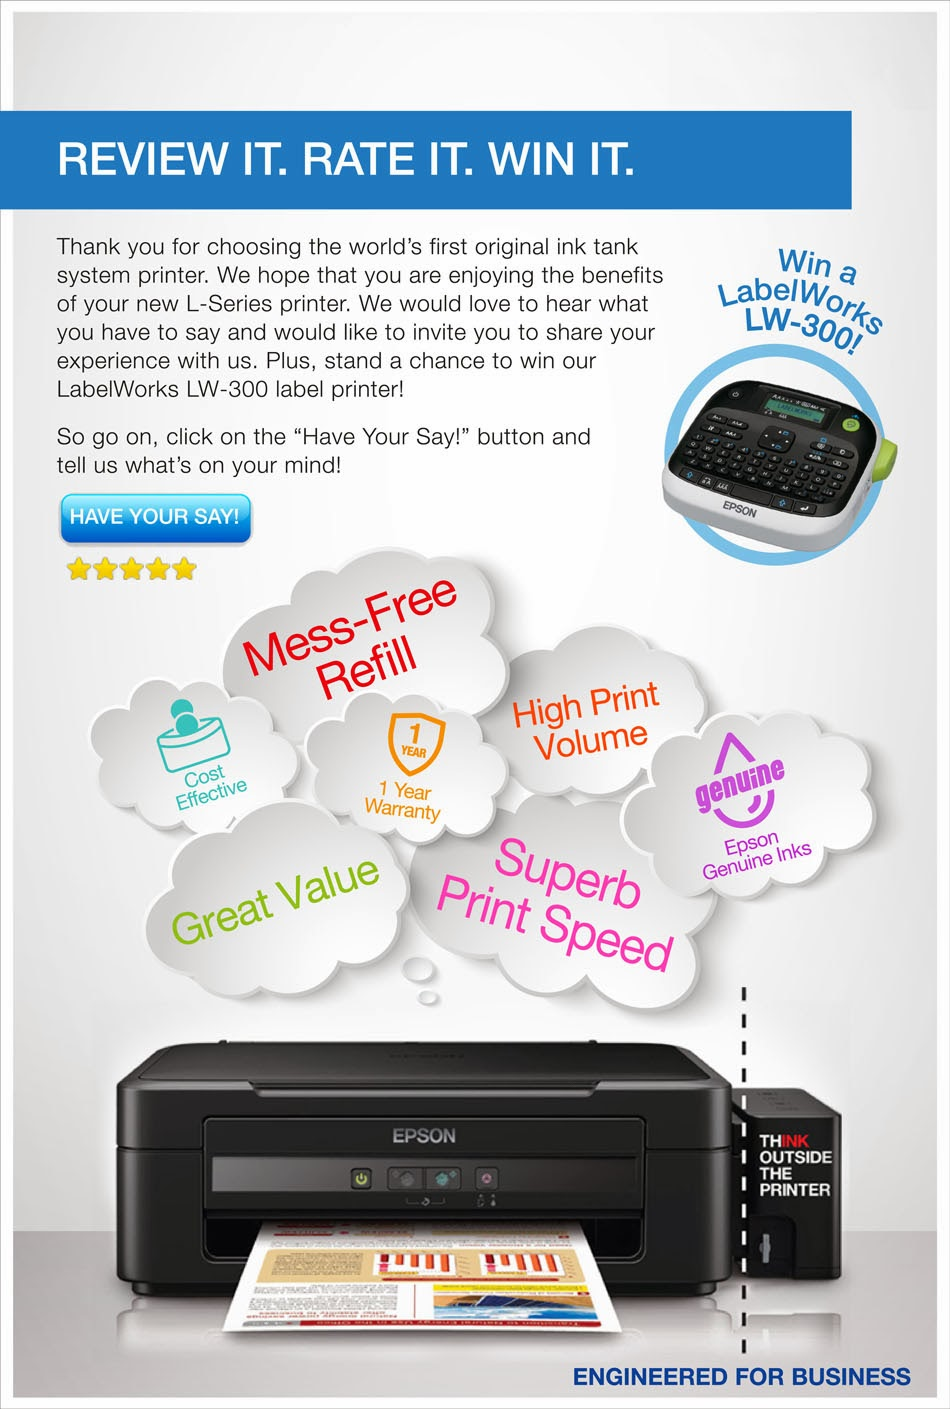 How to get Epson Ink Coupons